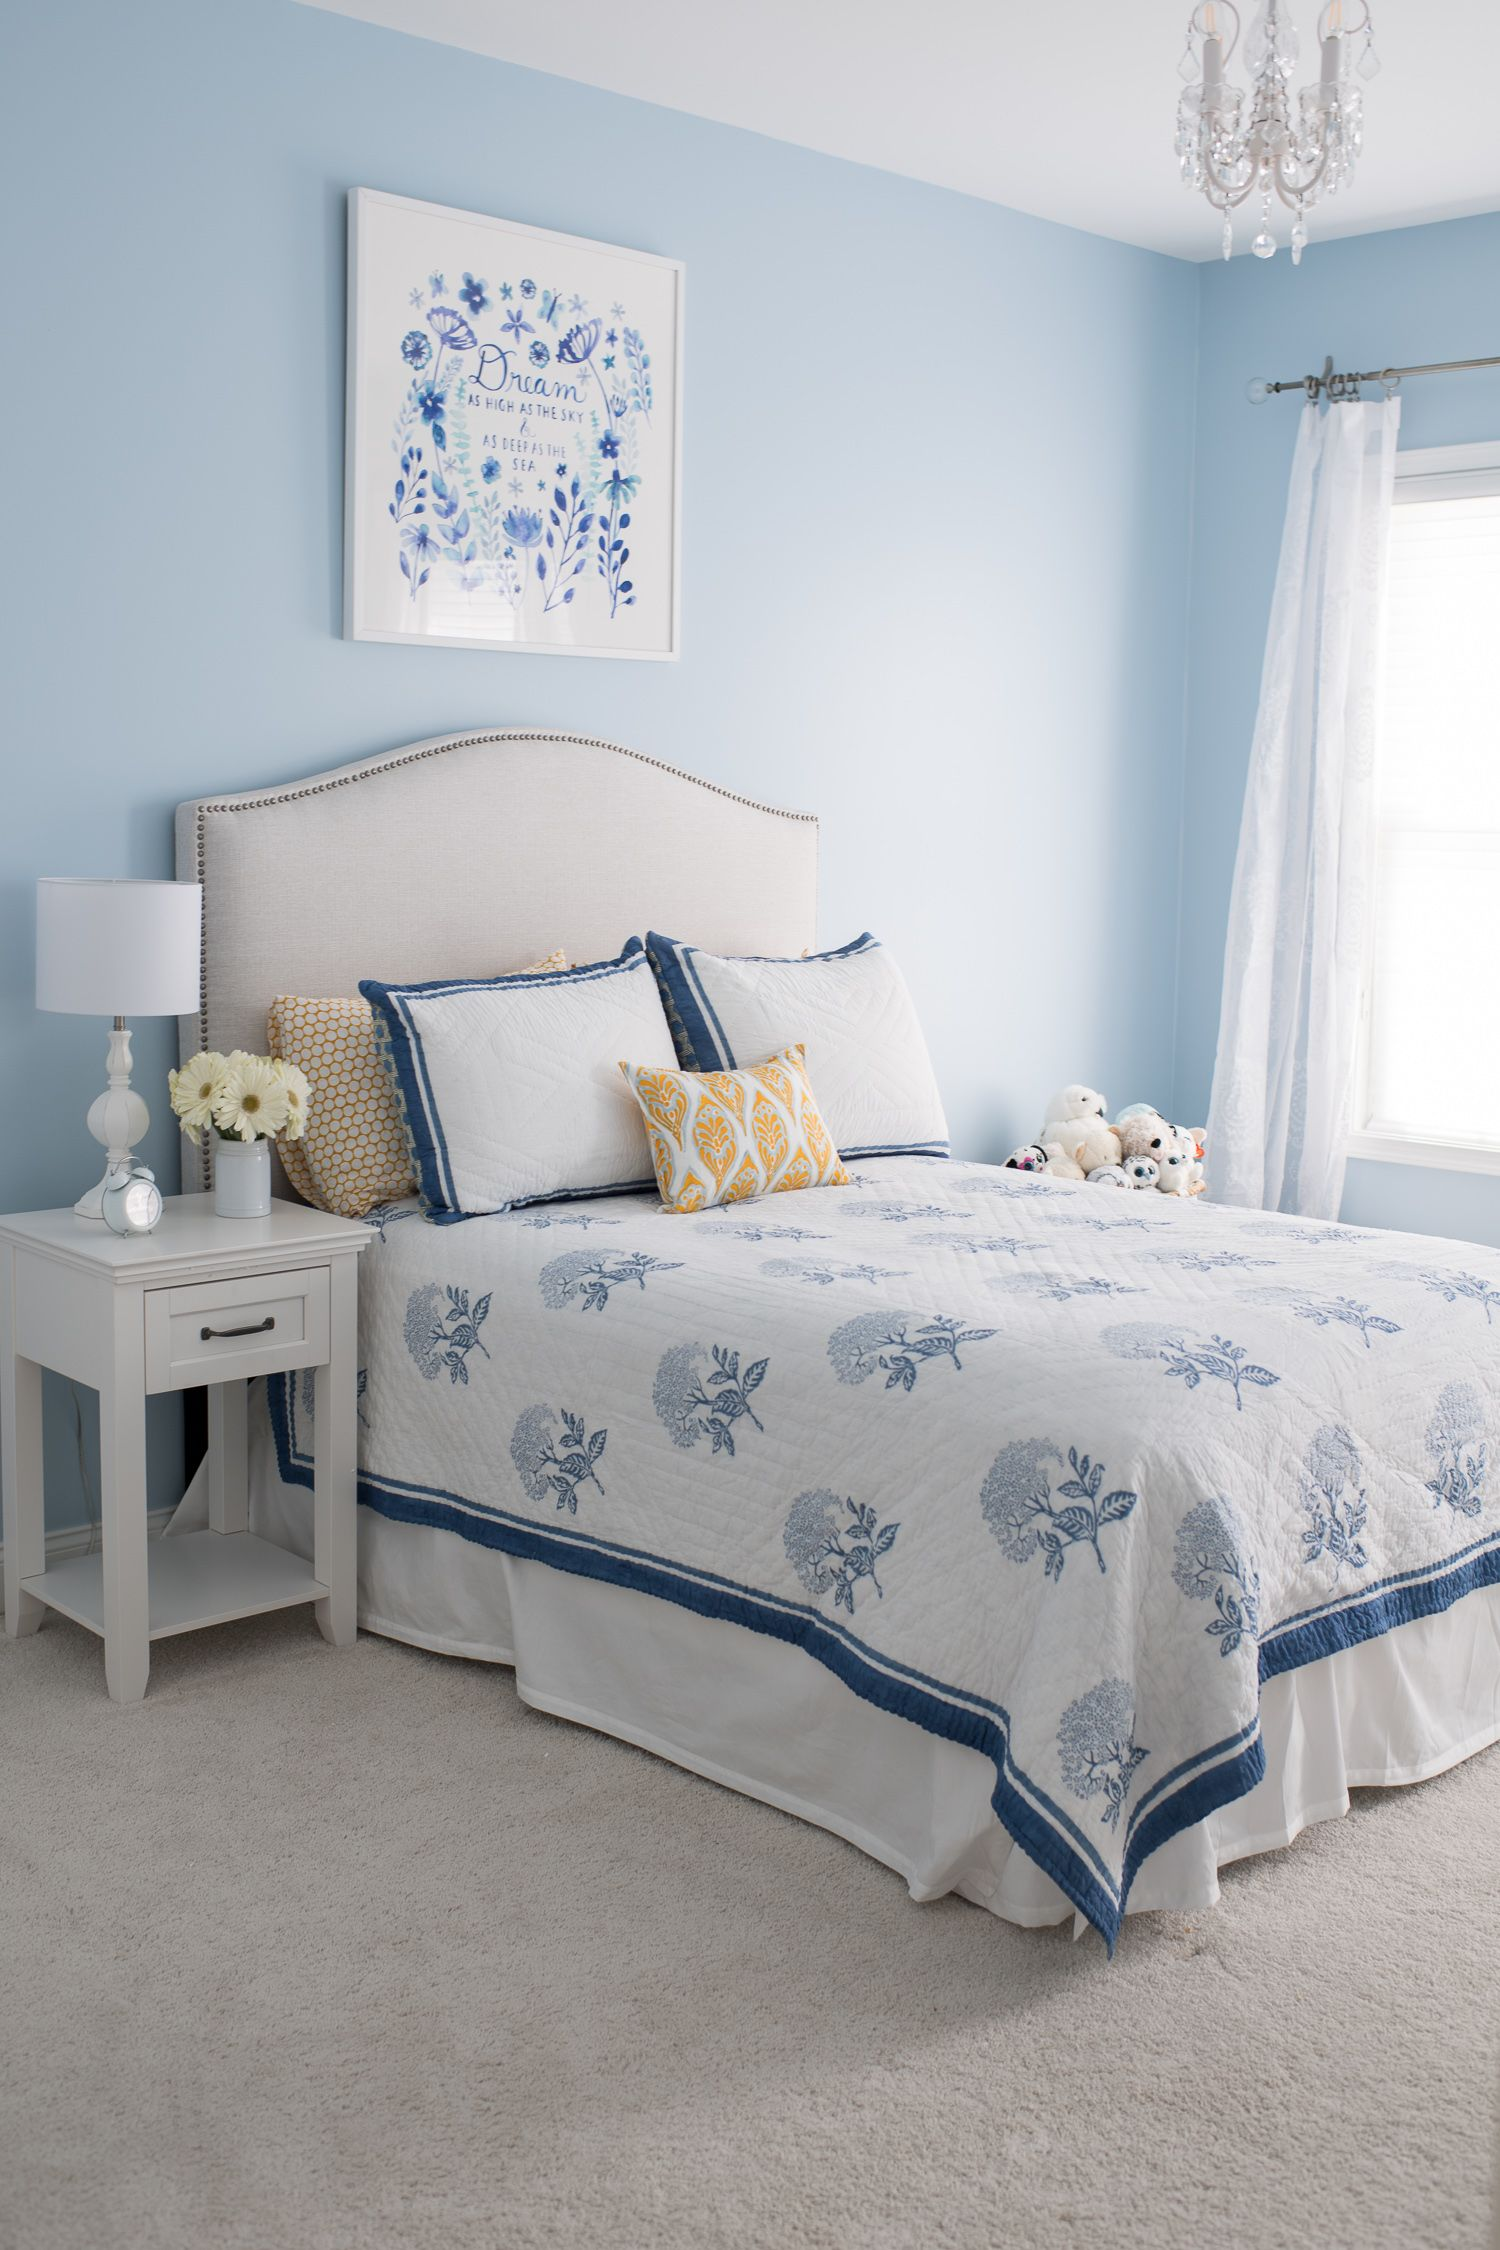 This Post Is Sponsored By Serena And Lily All Opinions However Are My Own Serena And Lily Bedding Relaxe Blue Bedroom Walls Blue Bedroom Decor Blue Bedroom